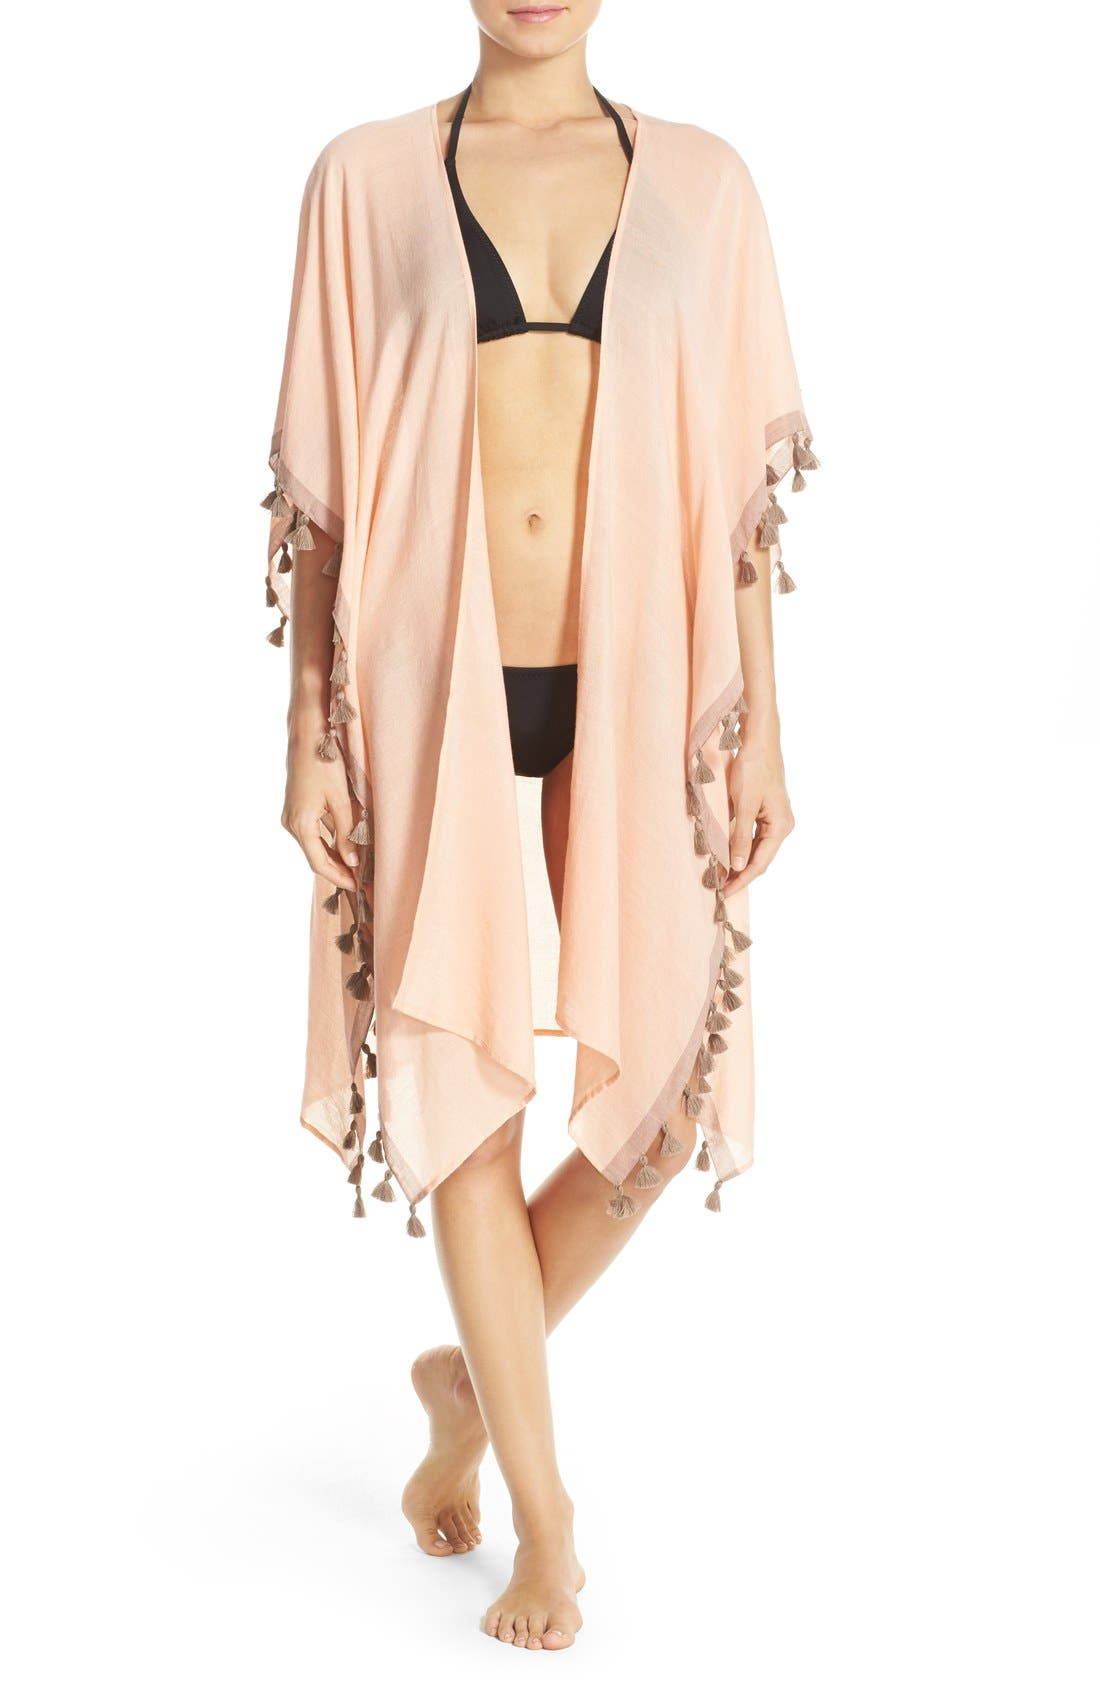 Main Image - ale BY ALESSANDRA 'Mother Earth' Tassel Trim Cover-Up Kimono